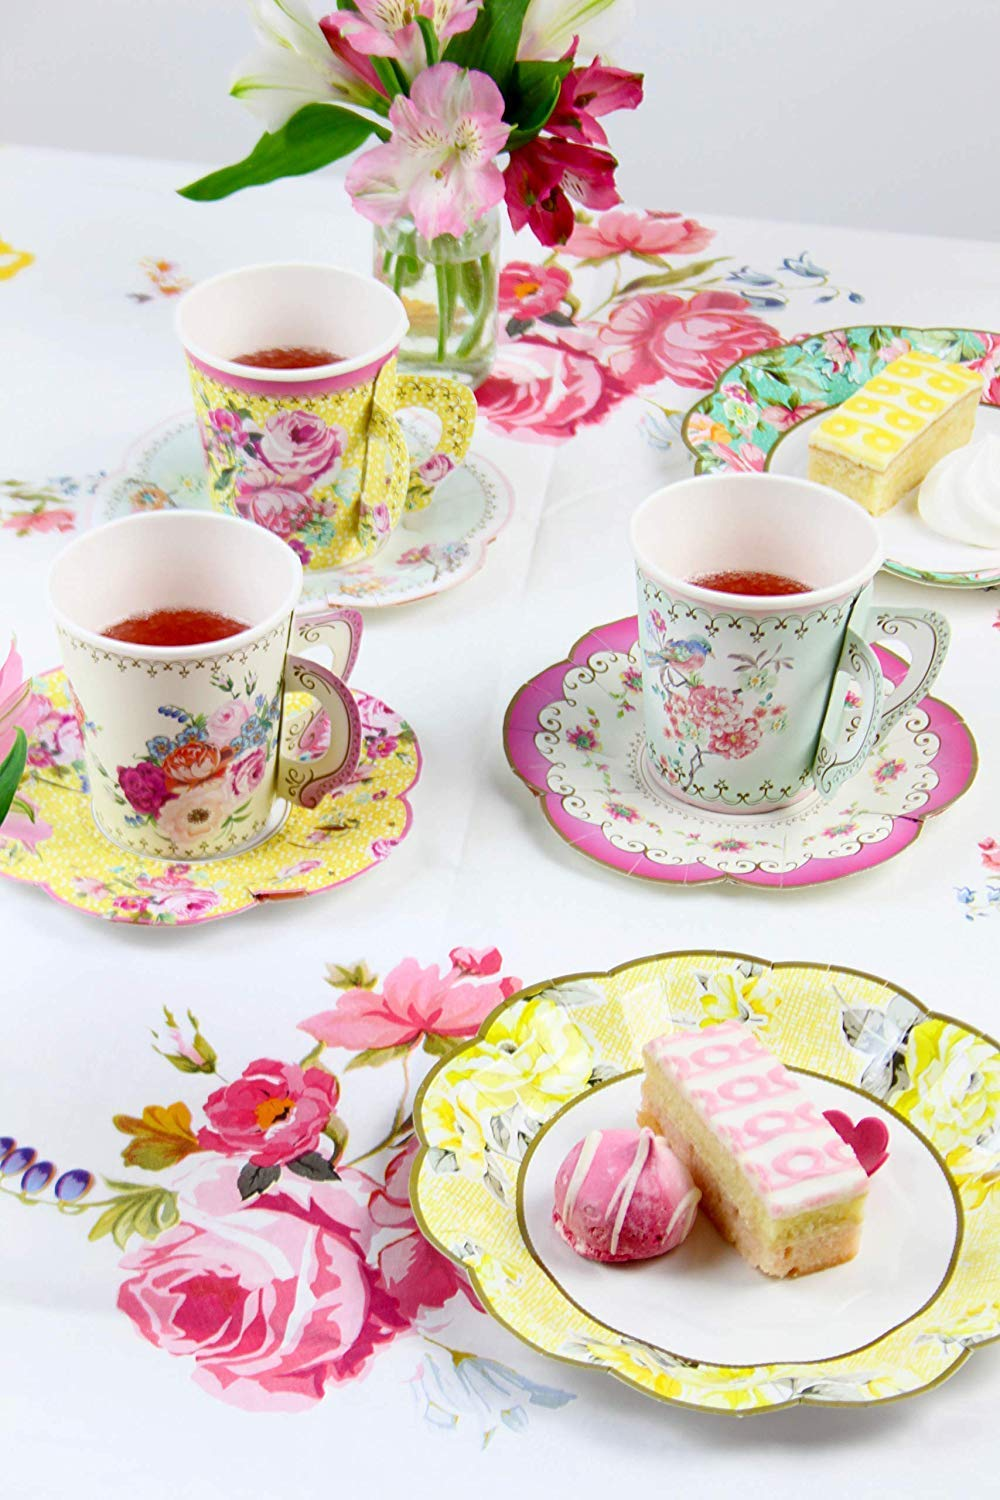 Talking Tables Vintage Floral Tea Party Supplies | Scalloped Paper Plates, Napkins, Tea Cups and Saucer Sets | Also Great for Wedding Parties, Bridal Shower, Baby Shower and Birthday Party by Talking Tables (Image #2)